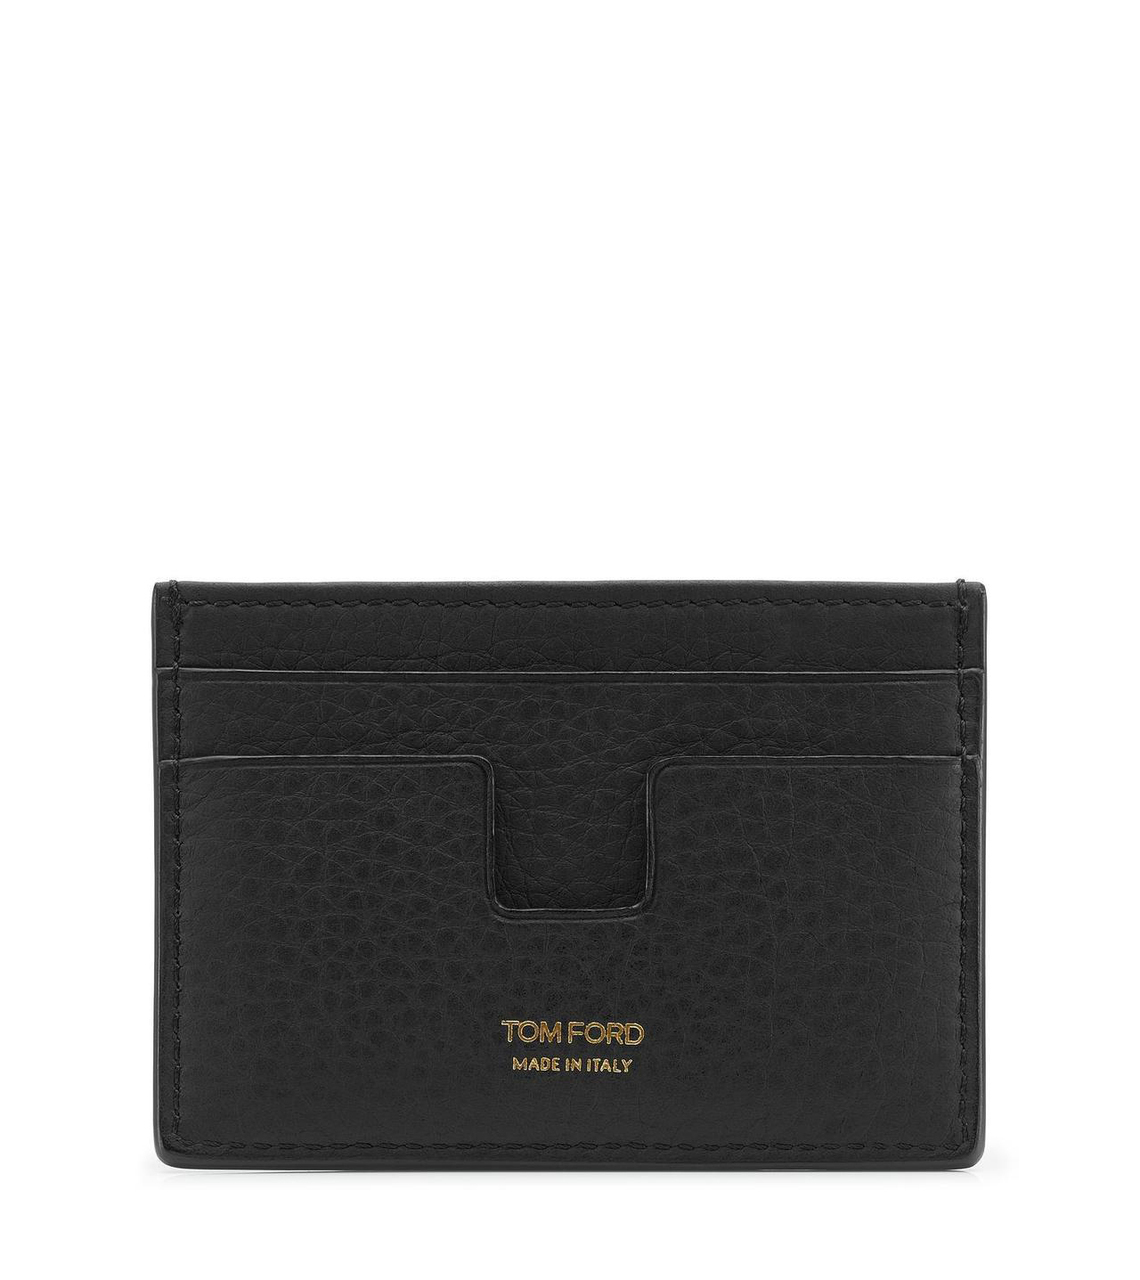 Tom Ford Black Grained Leather Card Holder Price Breaker